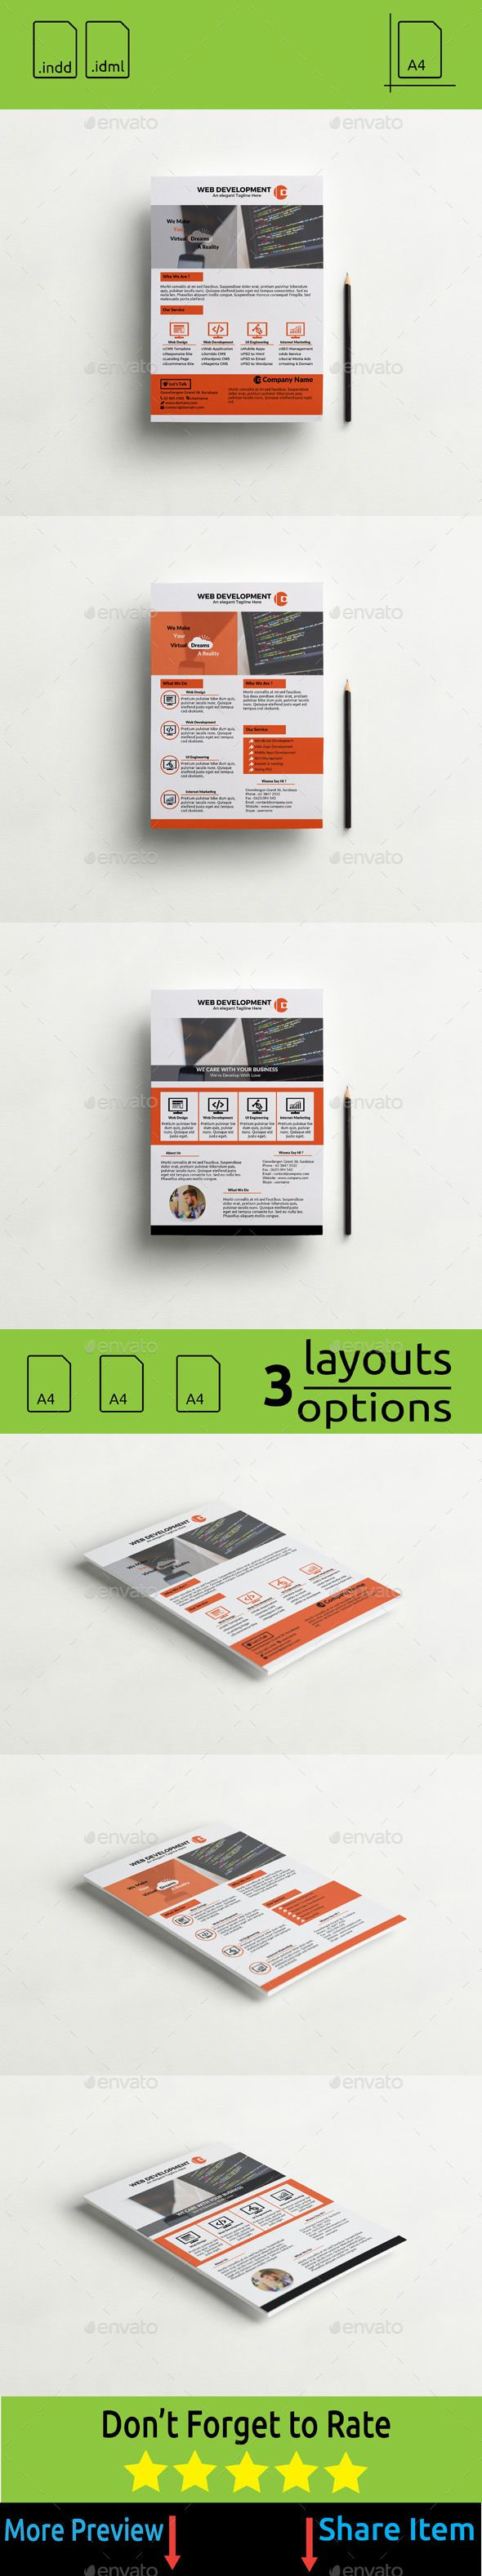 Flyer #Web #Apps and Web #Design Development - #Corporate #Flyers Download here: https://graphicriver.net/item/flyer-web-apps-and-web-design-development/11250228?ref=alena994